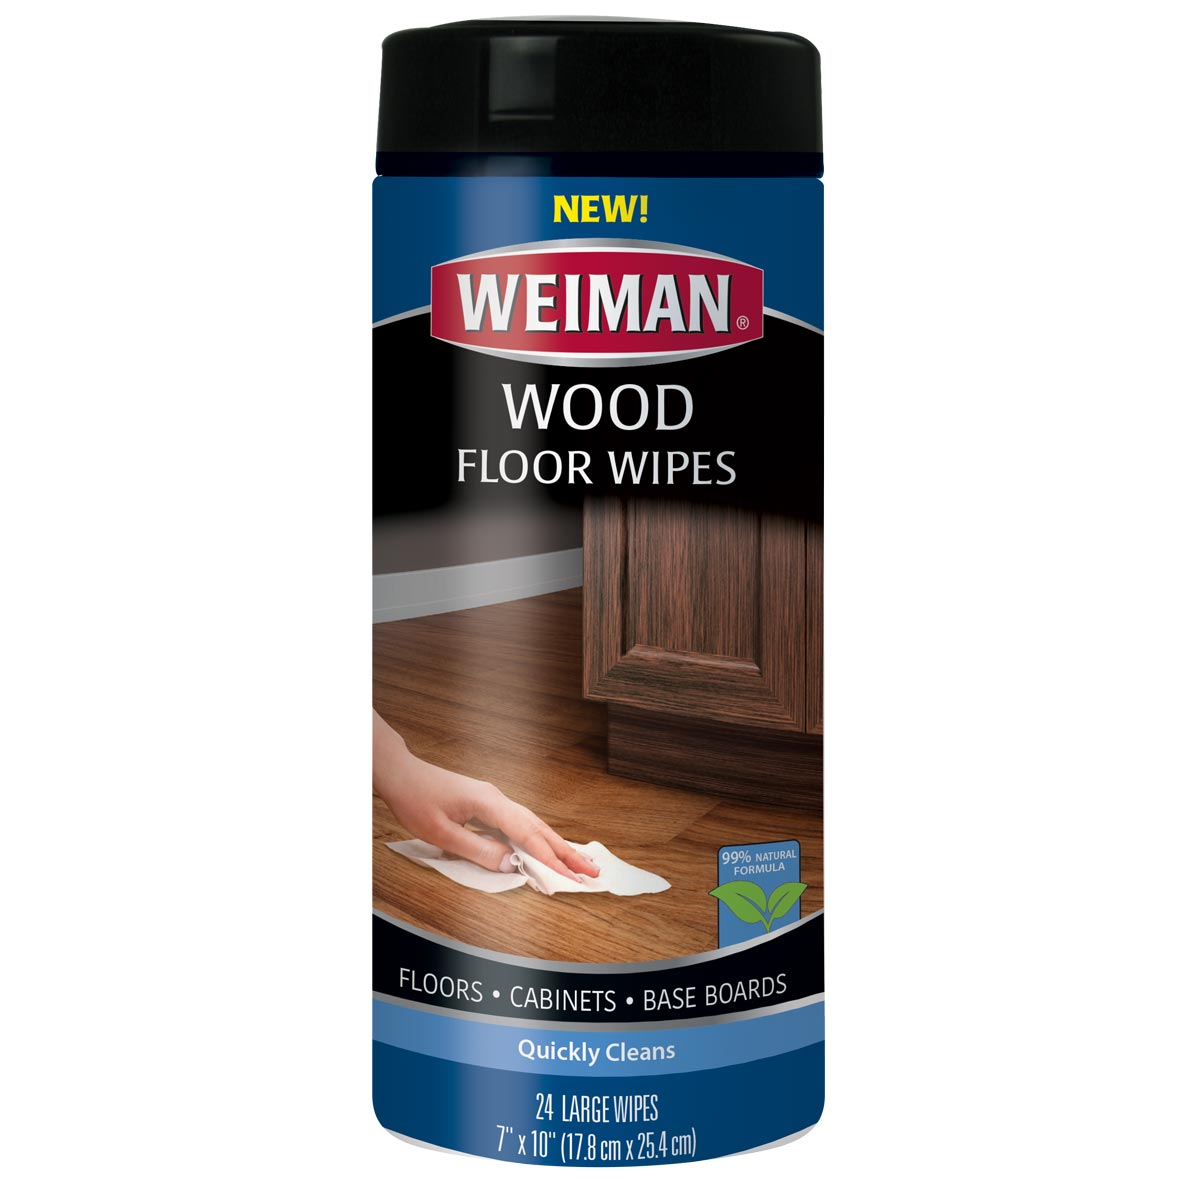 https://googone.com/media/catalog/product/w/e/weiman-wood-floor-wipes_front_1.jpg